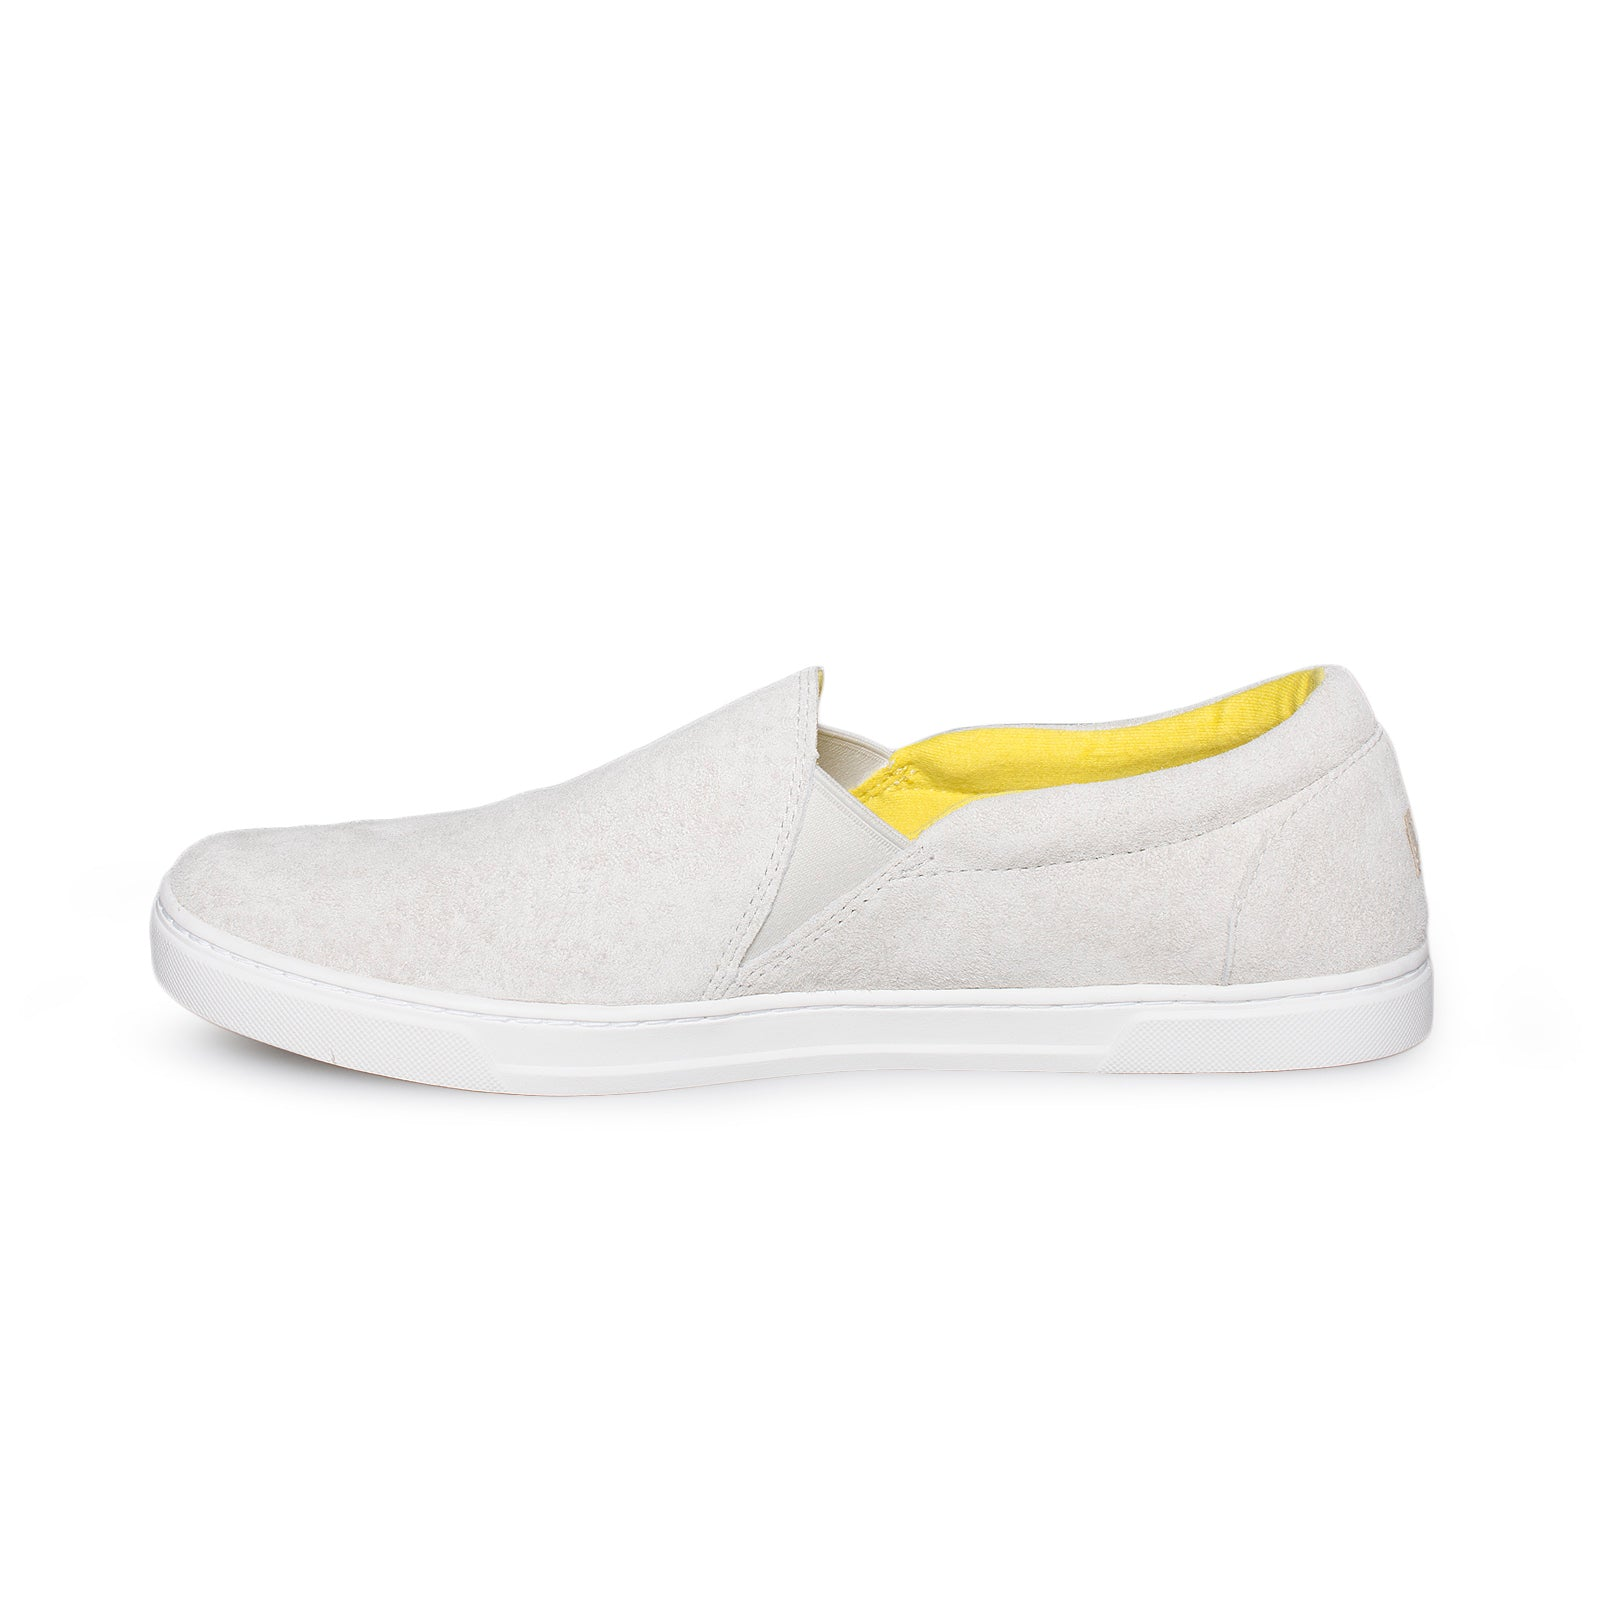 15e70029642 UGG Kitlyn White Lilly Shoes